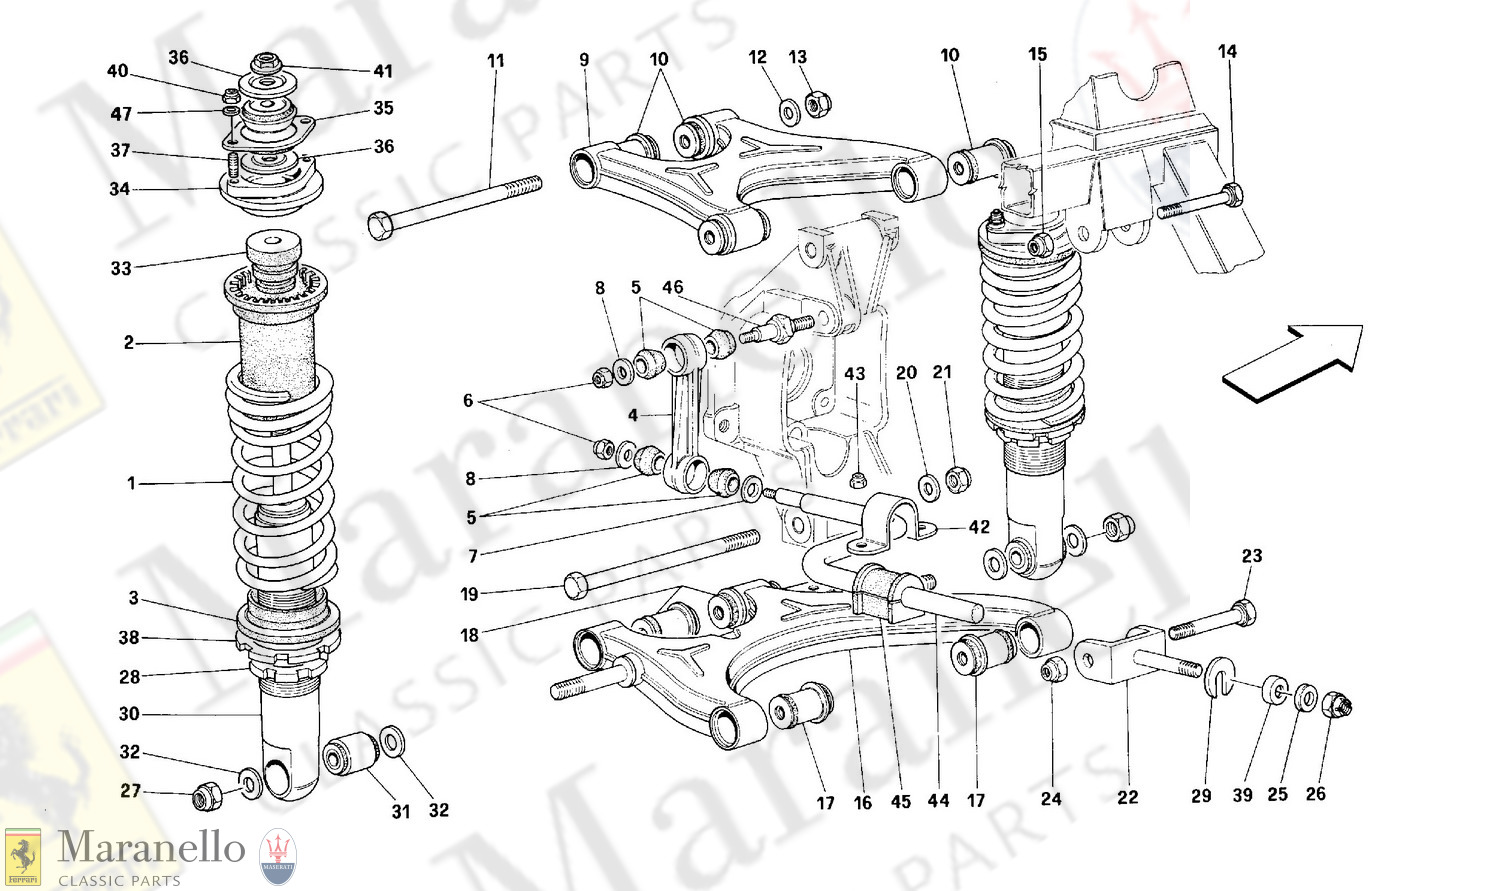 048 - Rear Suspension - Wishbones And Shock Absorers